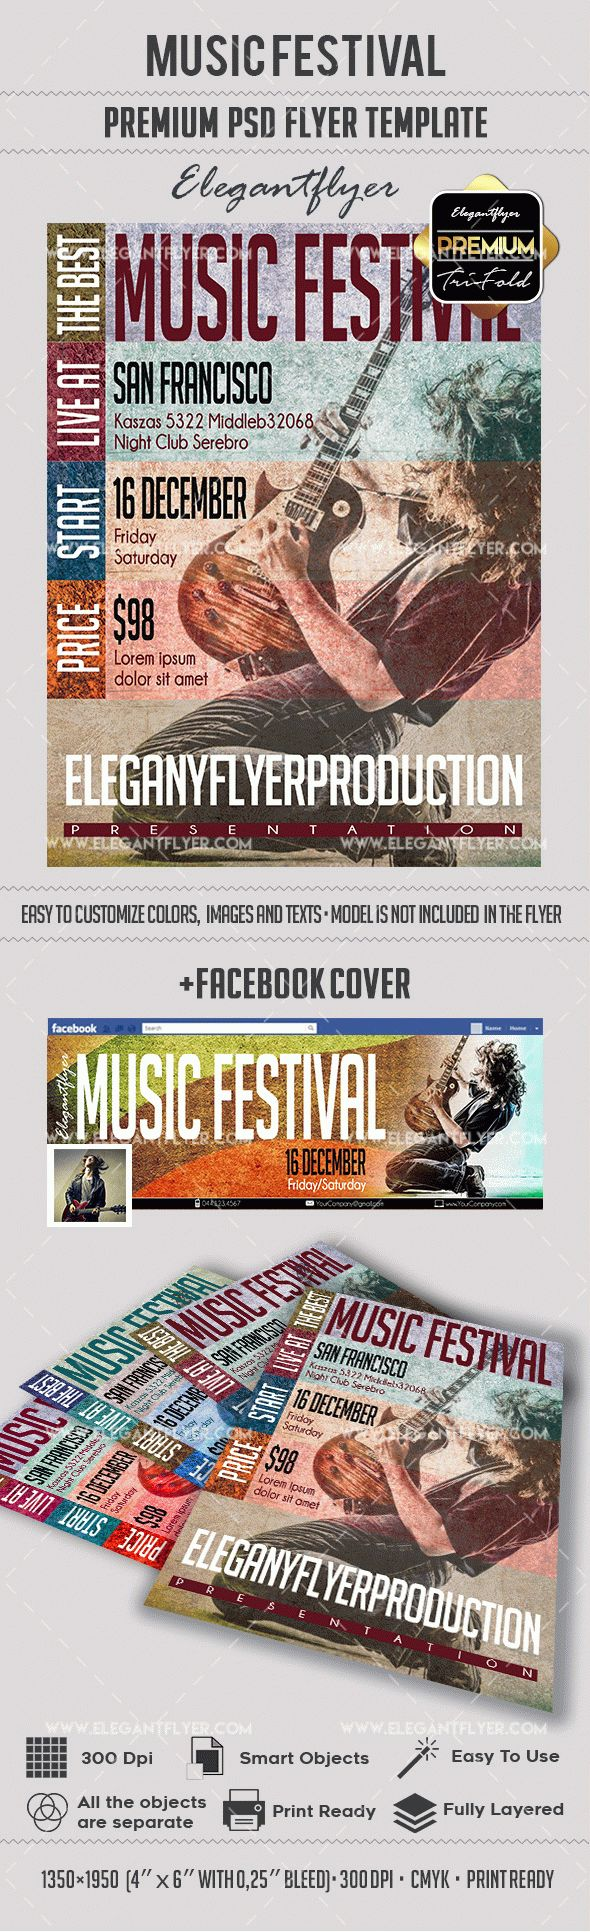 Music Festival – Premium Flyer PSD Template + Facebook Cover